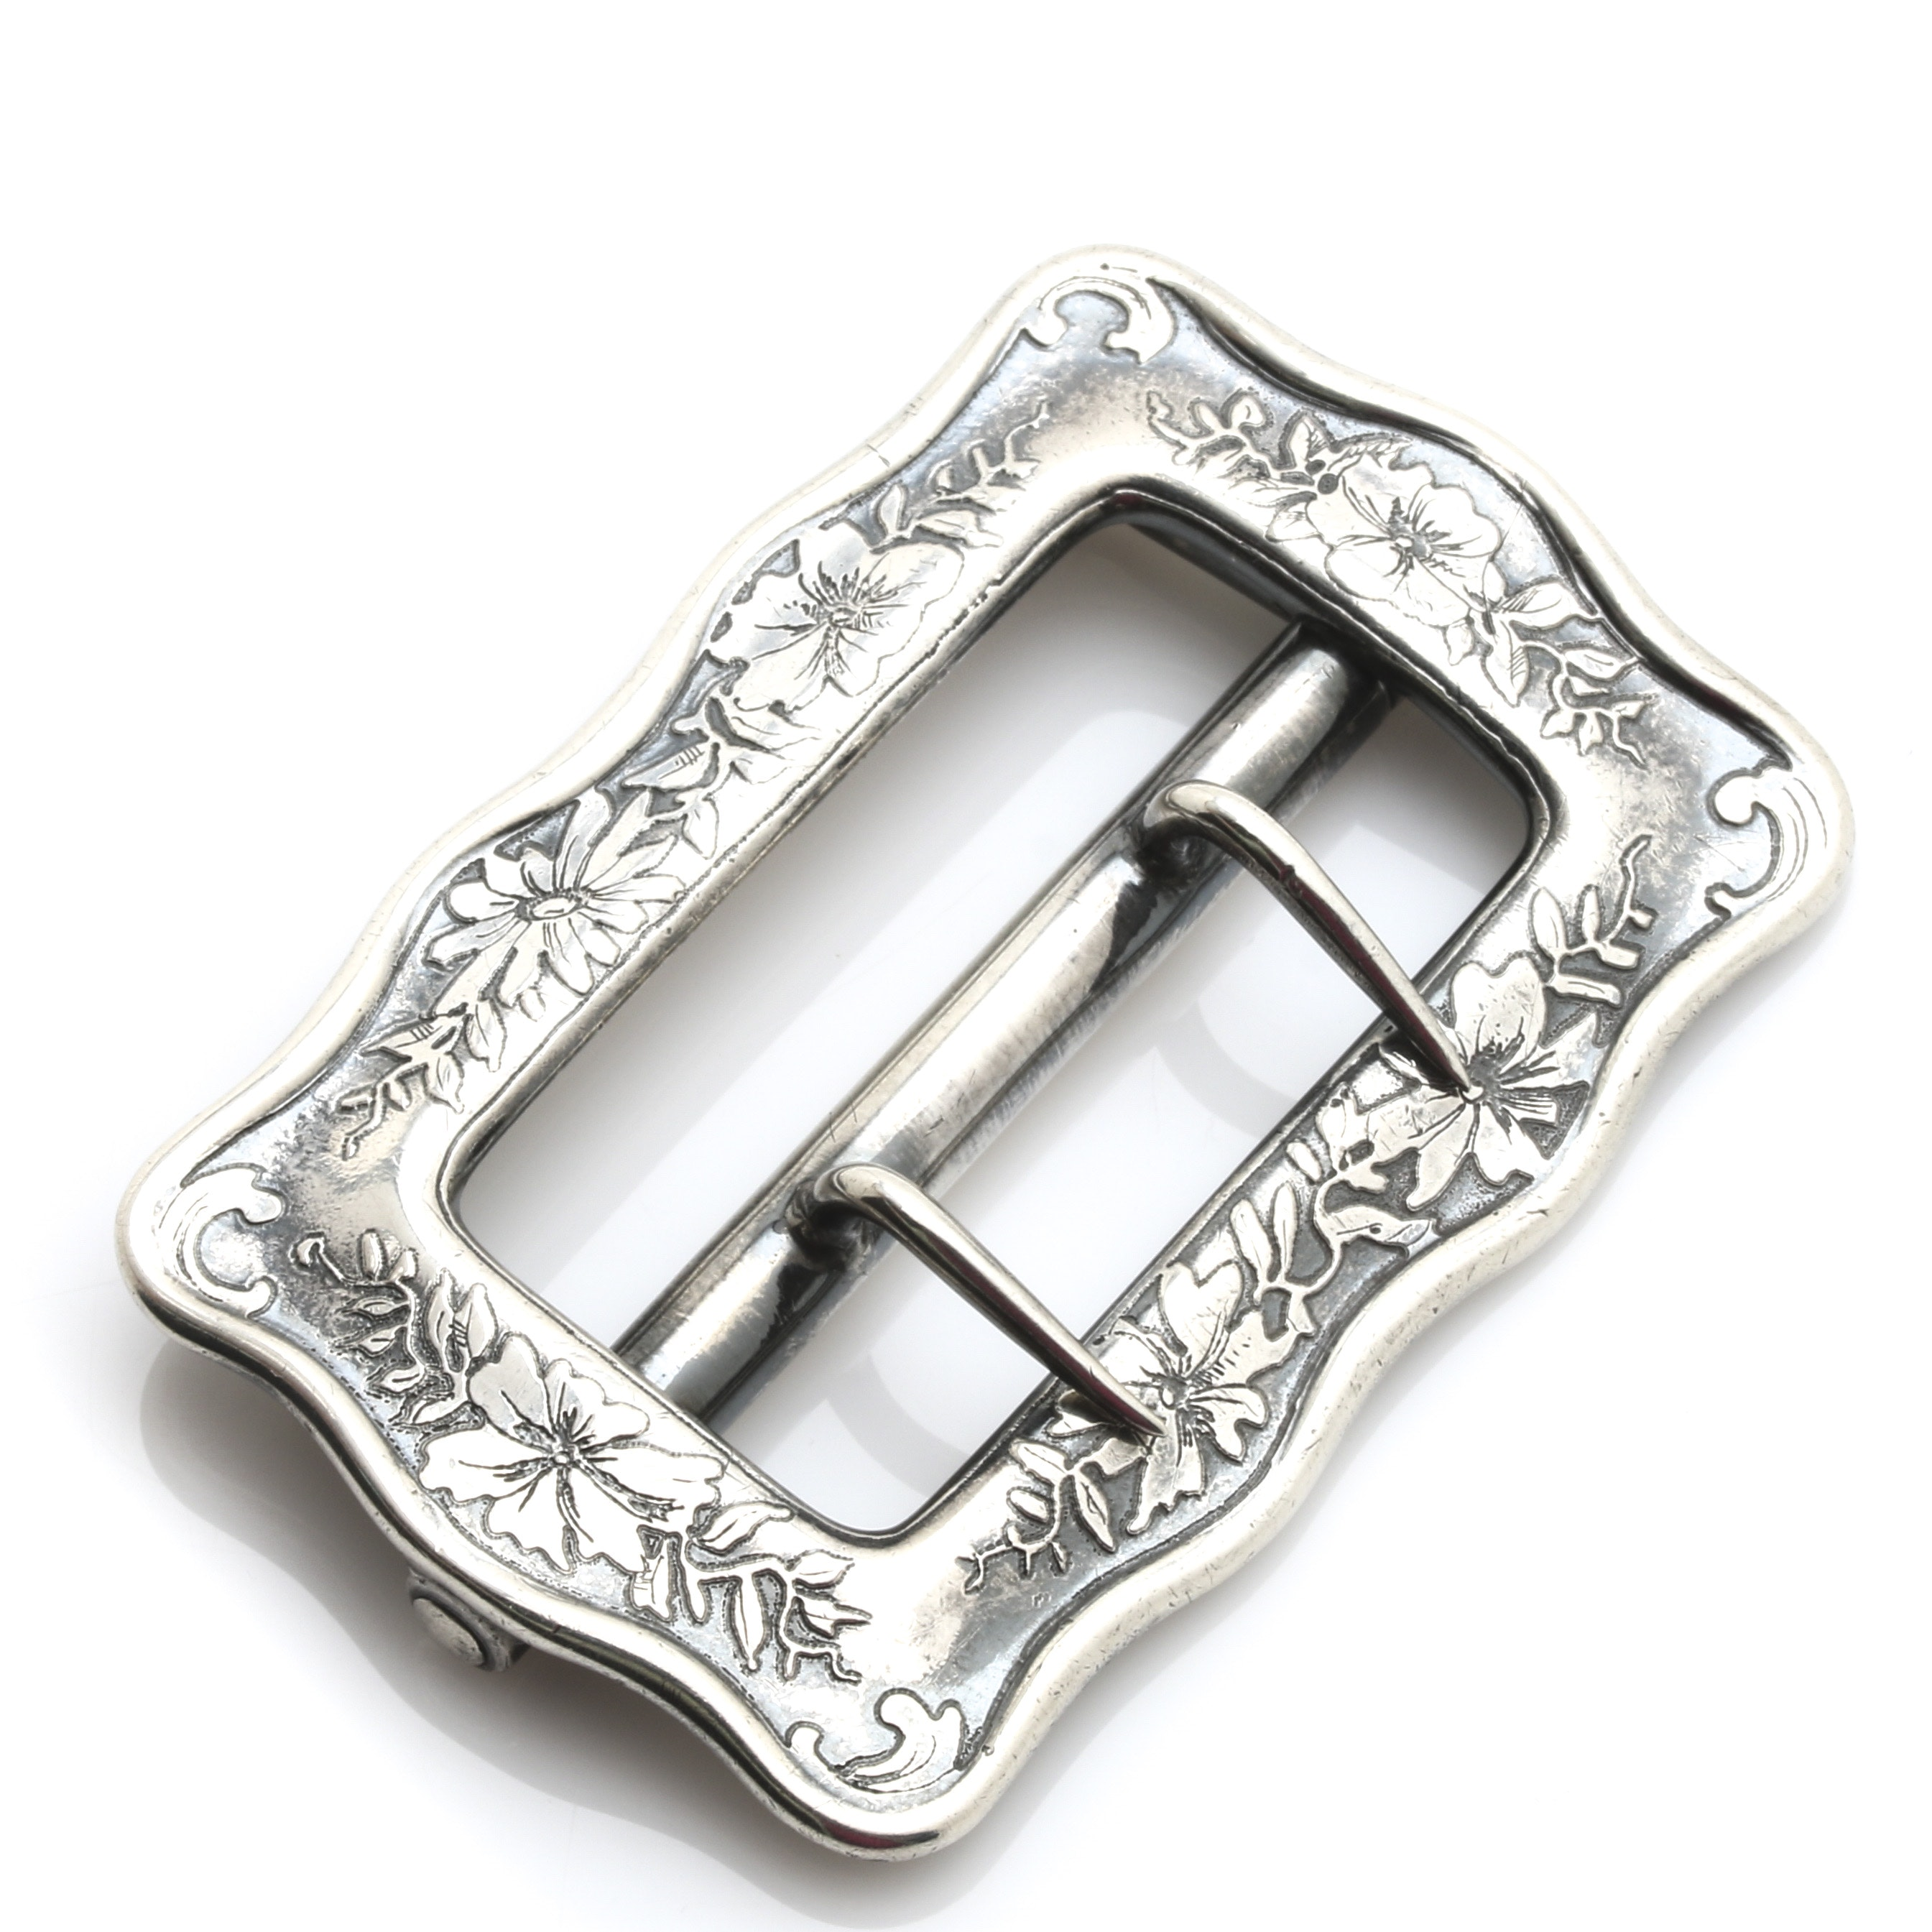 Vintage Tiffany & Co. Sterling Silver Sash Buckle